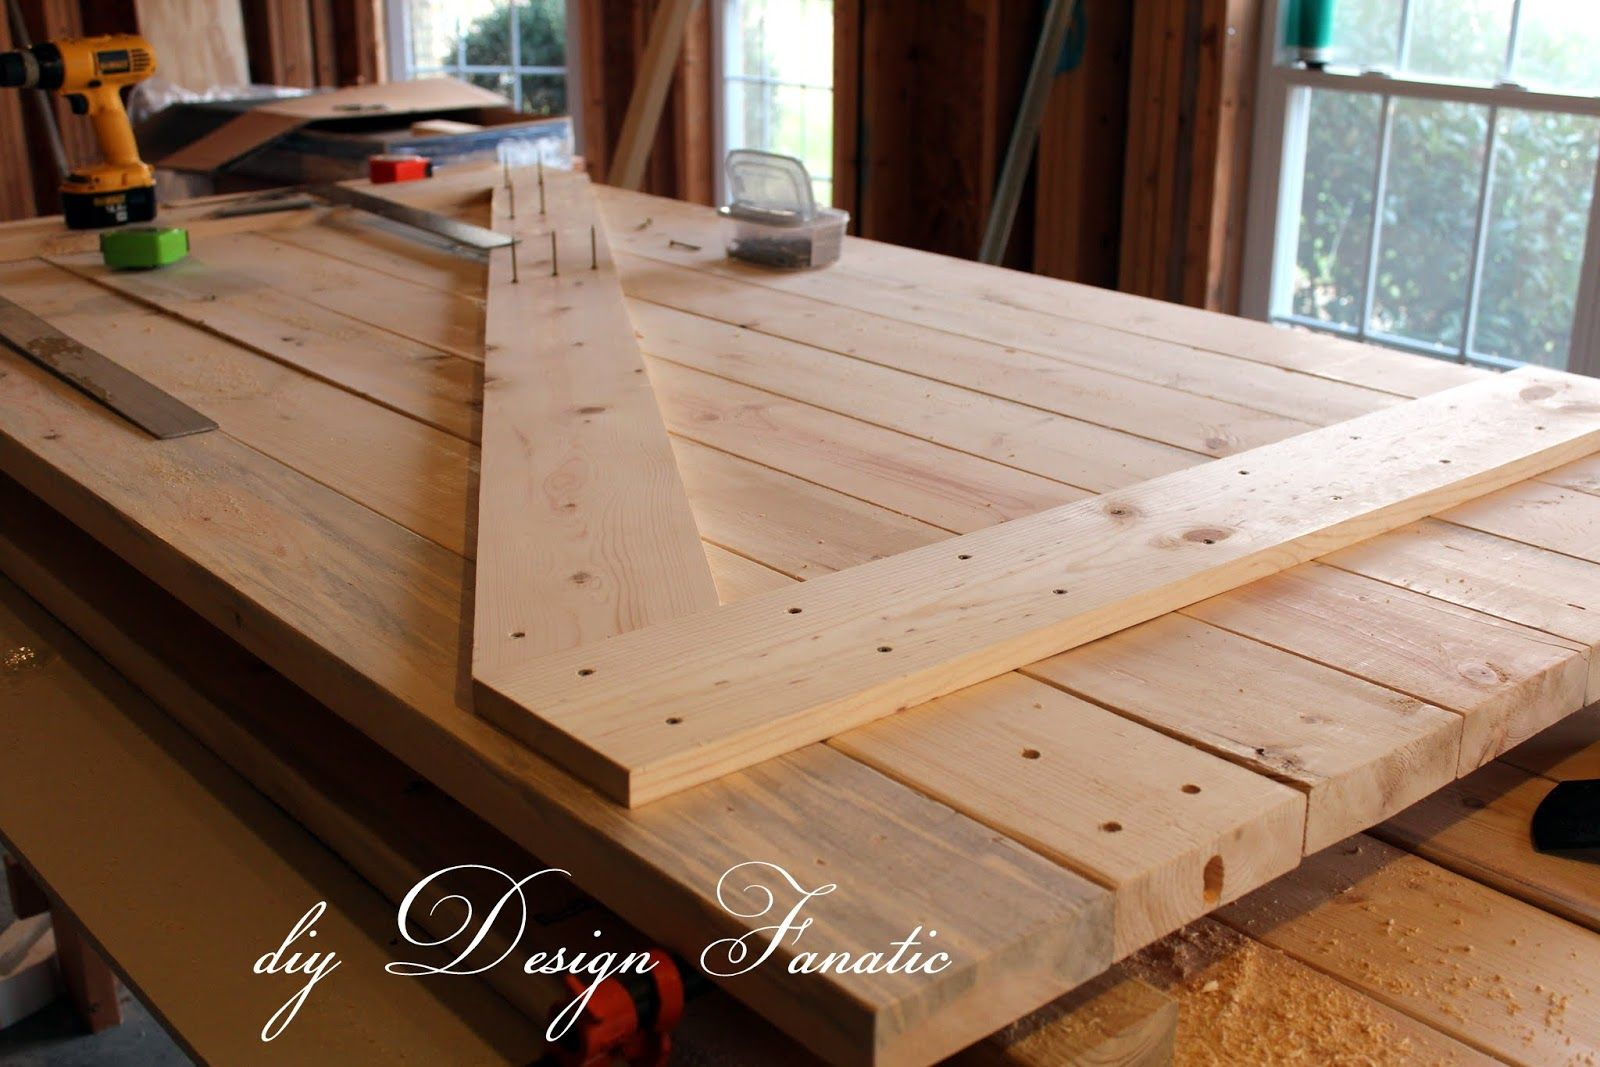 Diy Barn Doors For The Home Diy Barn Door Making Barn